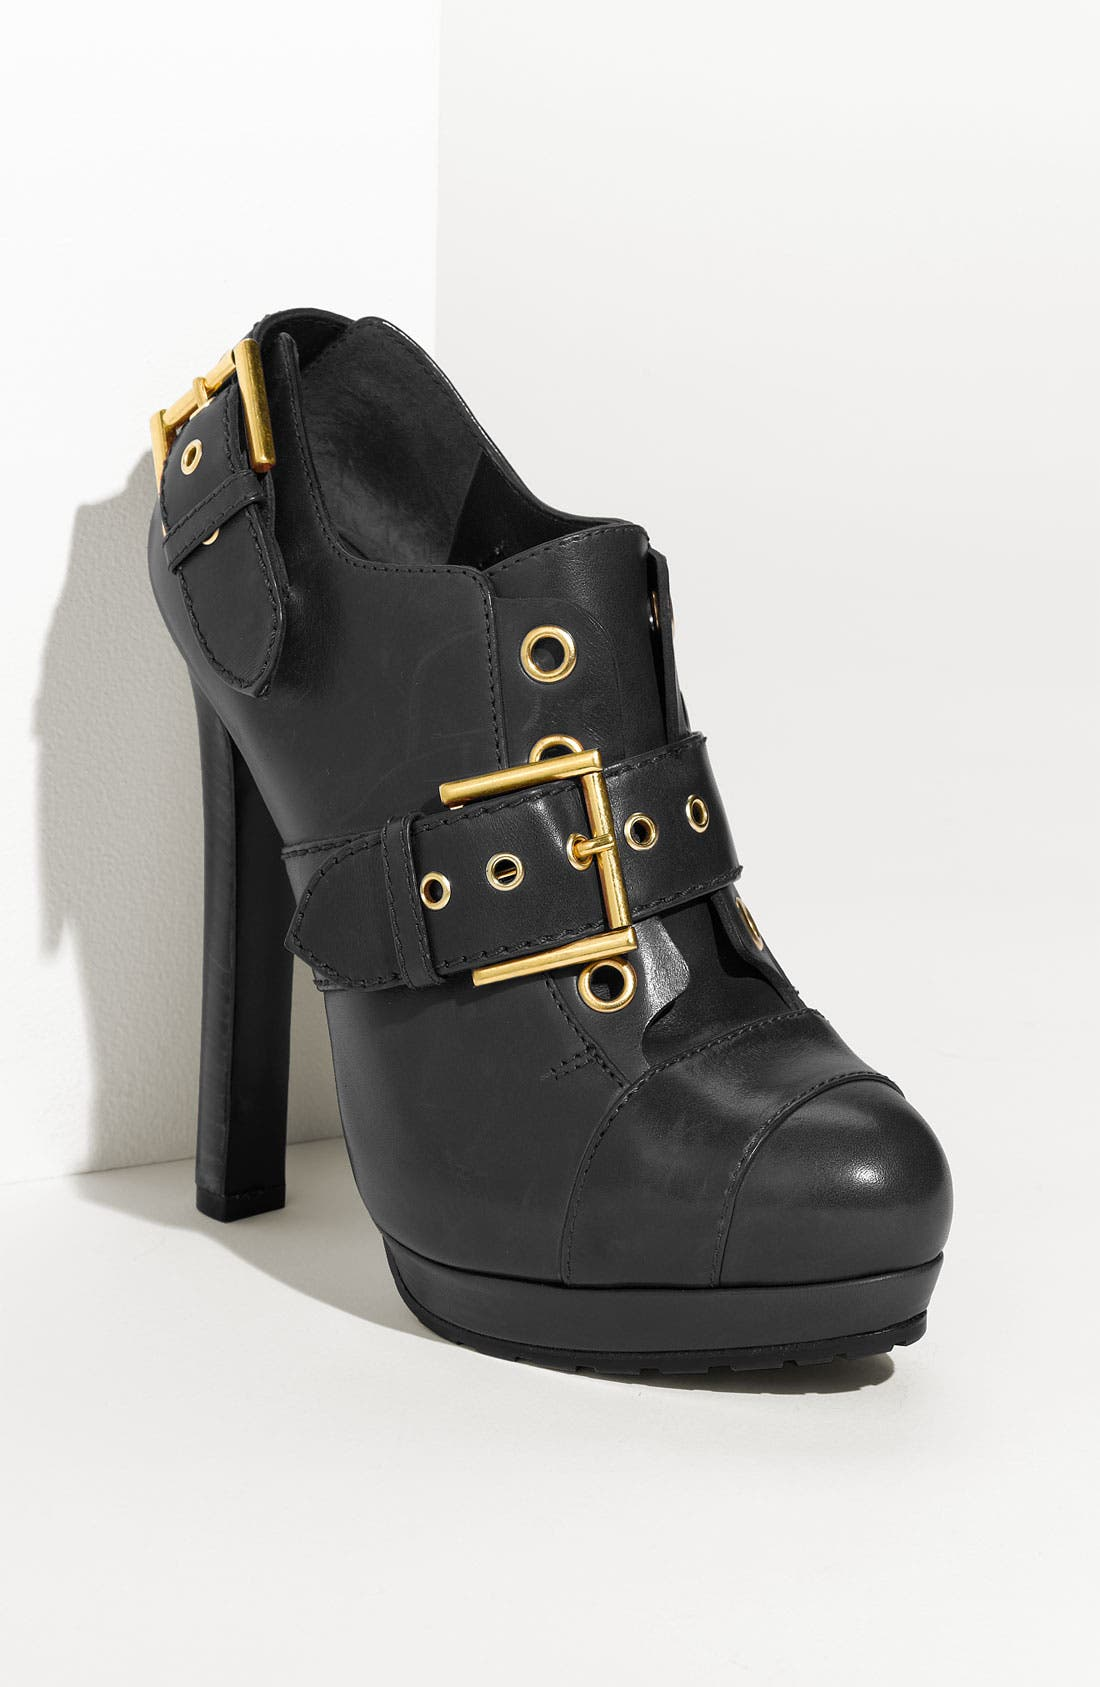 Alternate Image 1 Selected - Alexander McQueen Buckled Leather Bootie